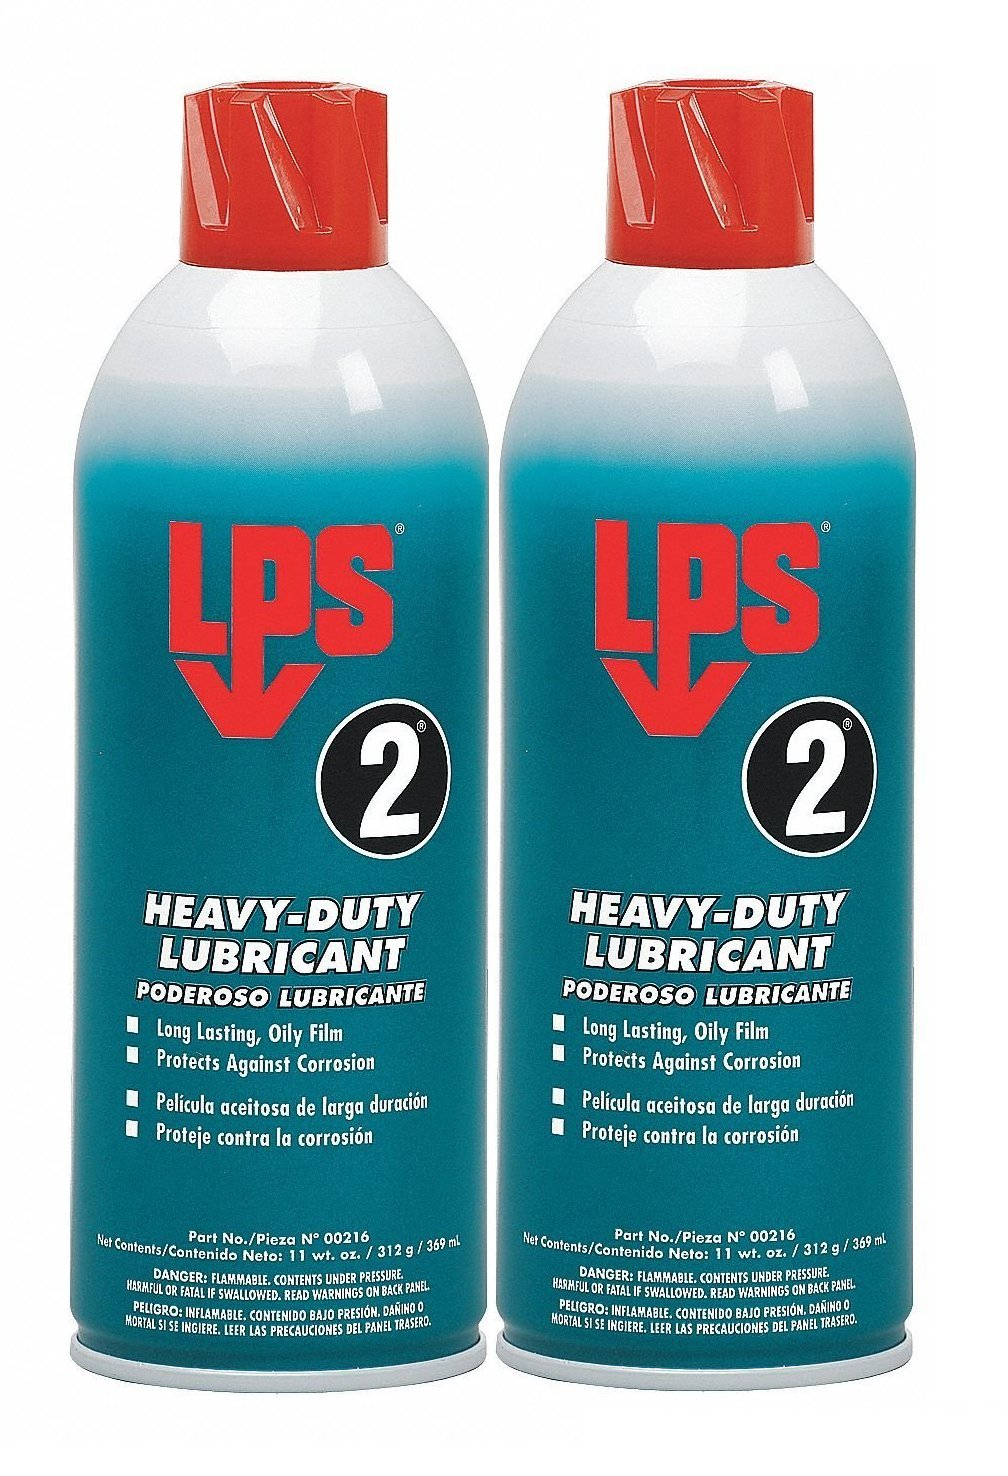 2-Pack LPS Labs LPS 2 Heavy-Duty Lubricant